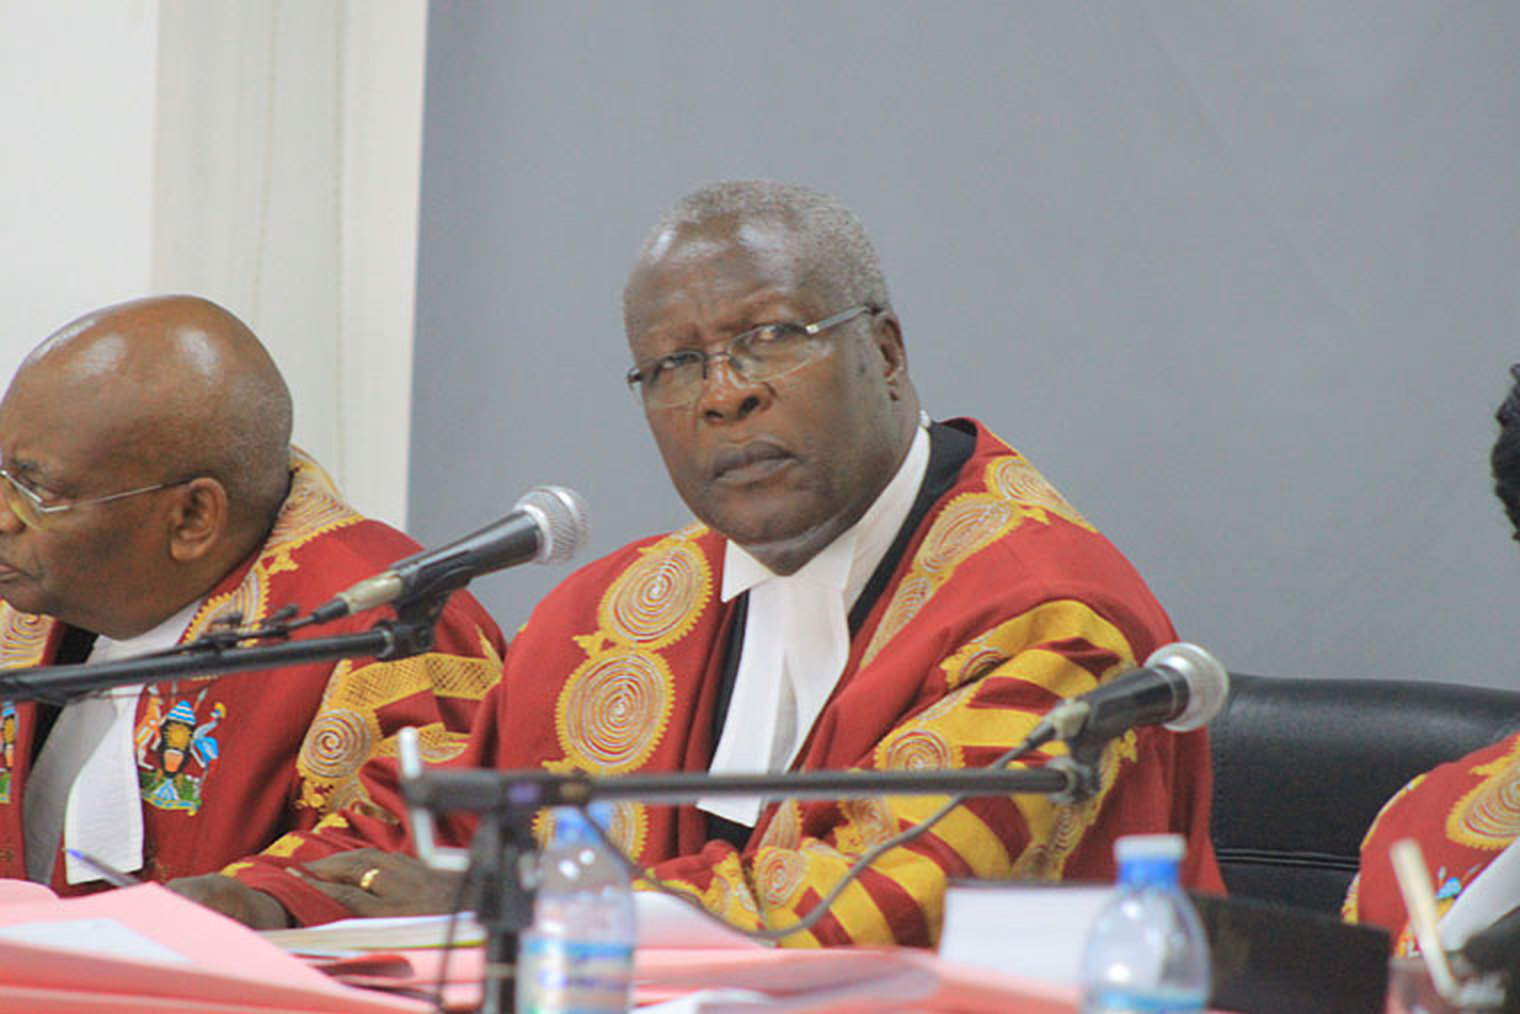 Chief Justice Bart Katureebe at a proceeding recently.